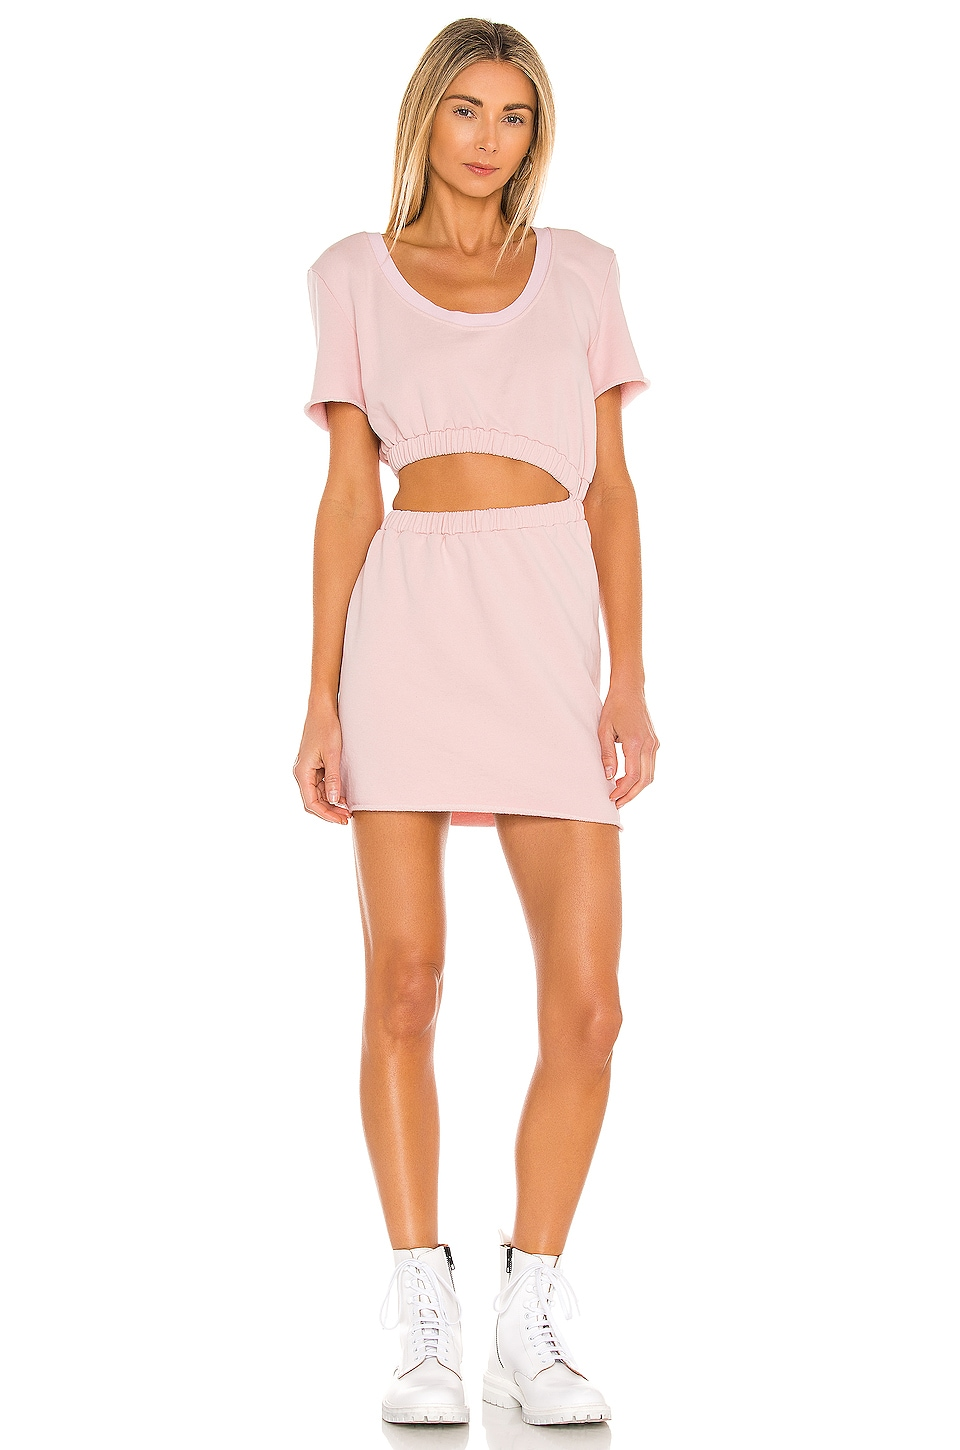 Lovers + Friends Cutout Sweater Dress in Soft Pink